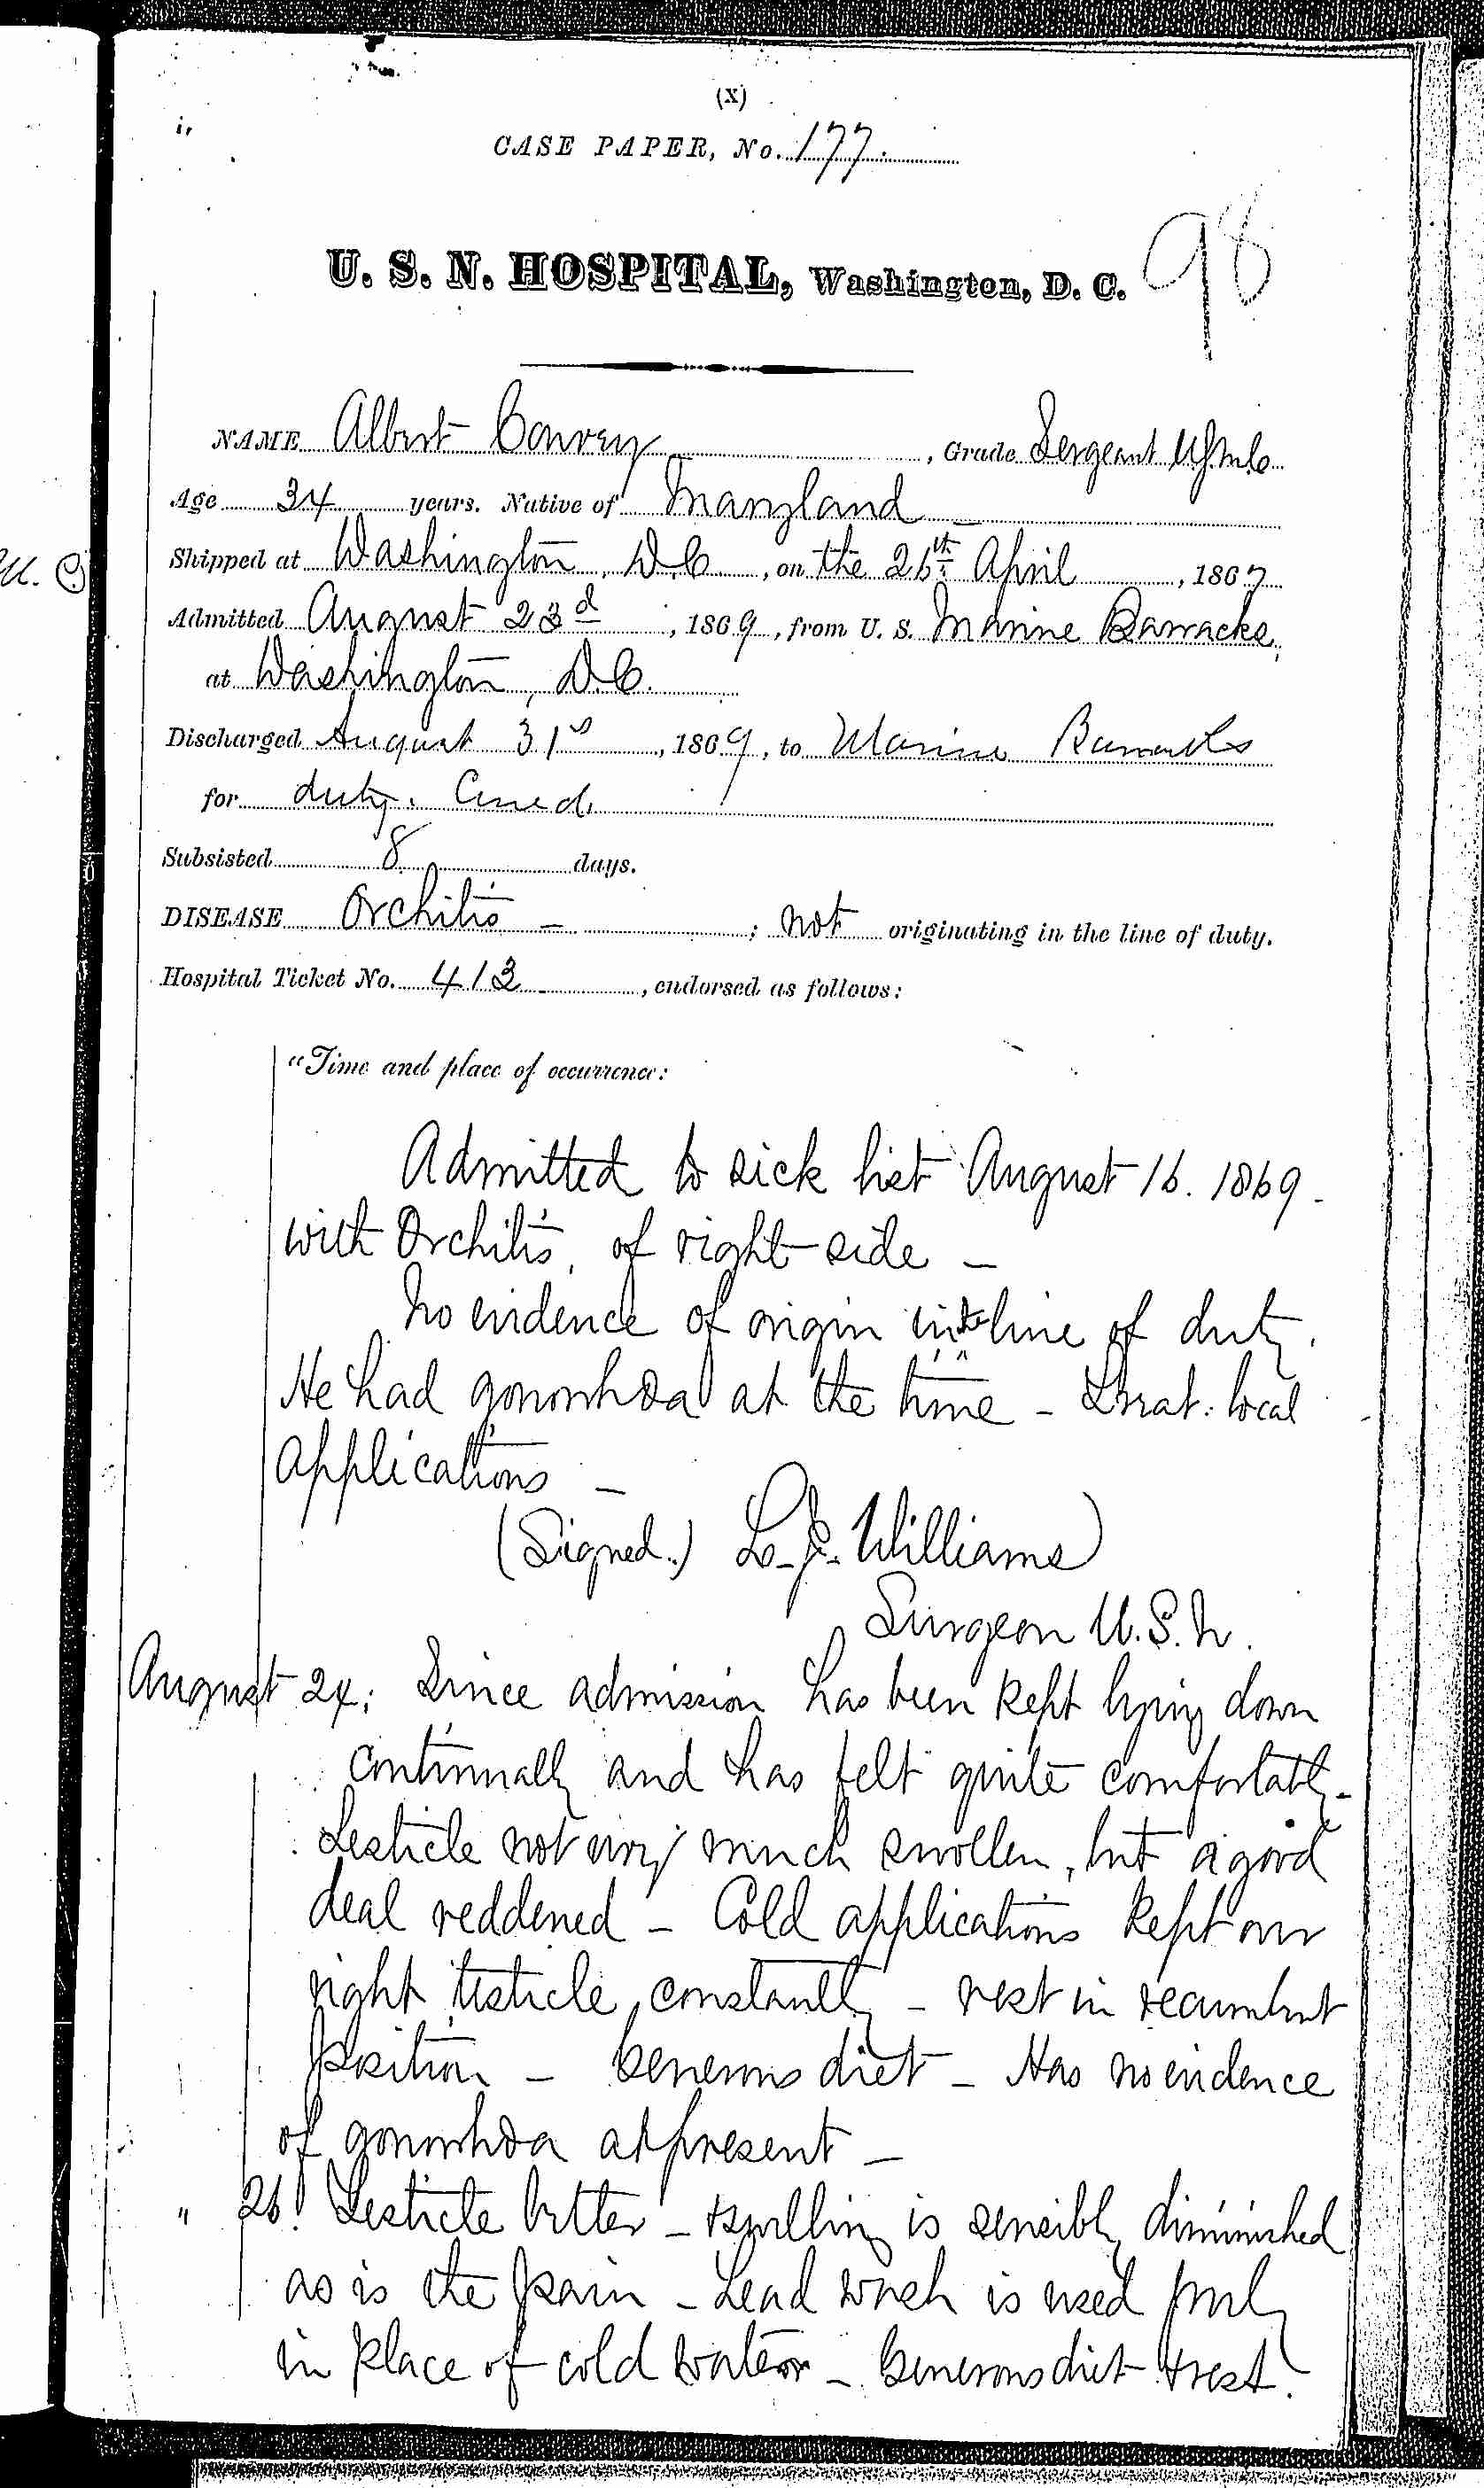 Entry for Albert Carney (page 1 of 1) in the log Hospital Tickets and Case Papers - Naval Hospital - Washington, D.C. - 1868-69